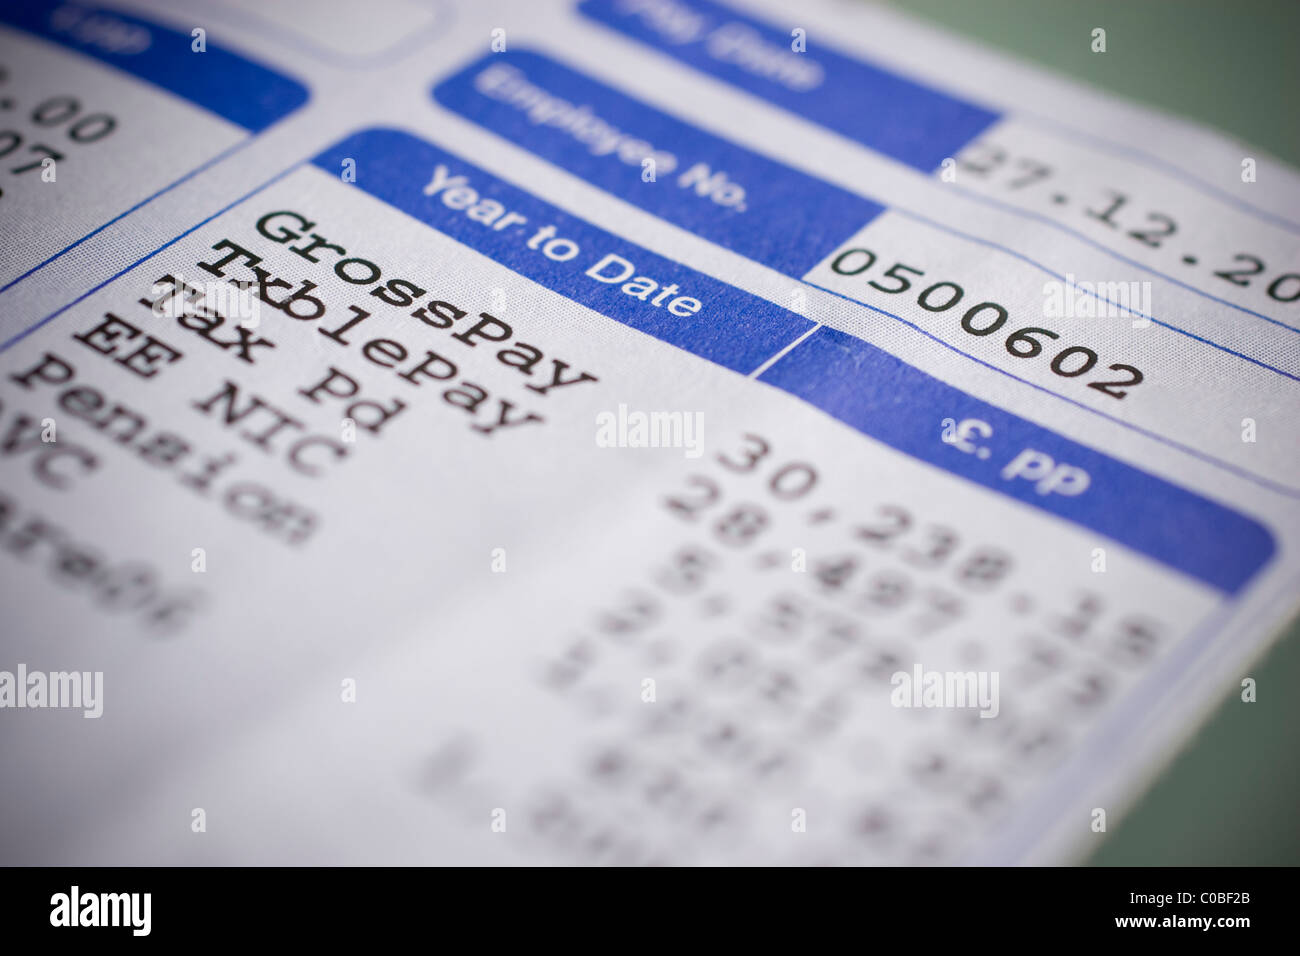 Wage slips, wages pay payslips wageslips - Stock Image